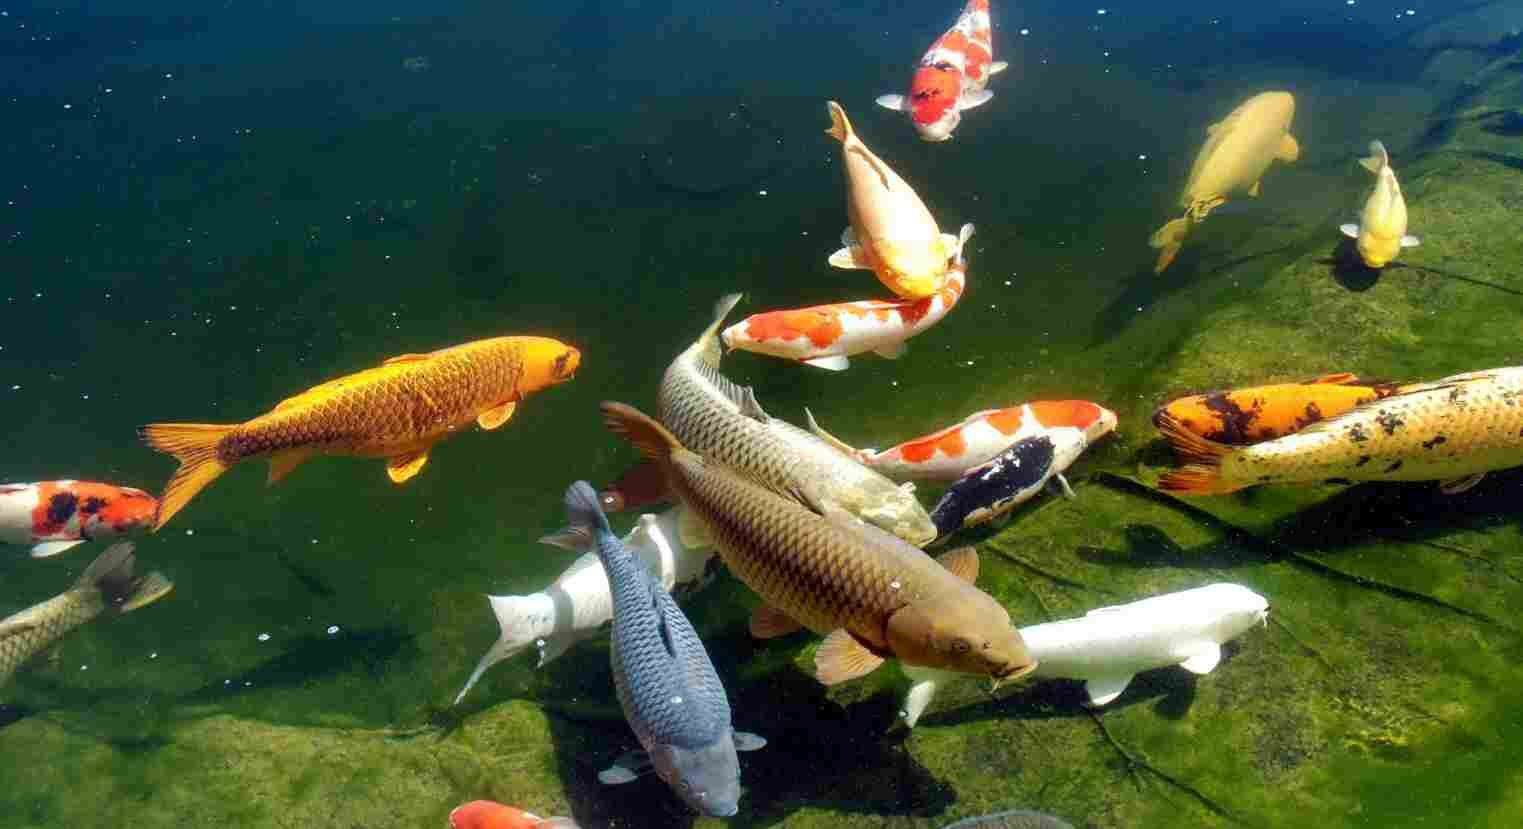 Koi fish pond wallpaper hd koi fish in the pond koi for Koi goldfisch